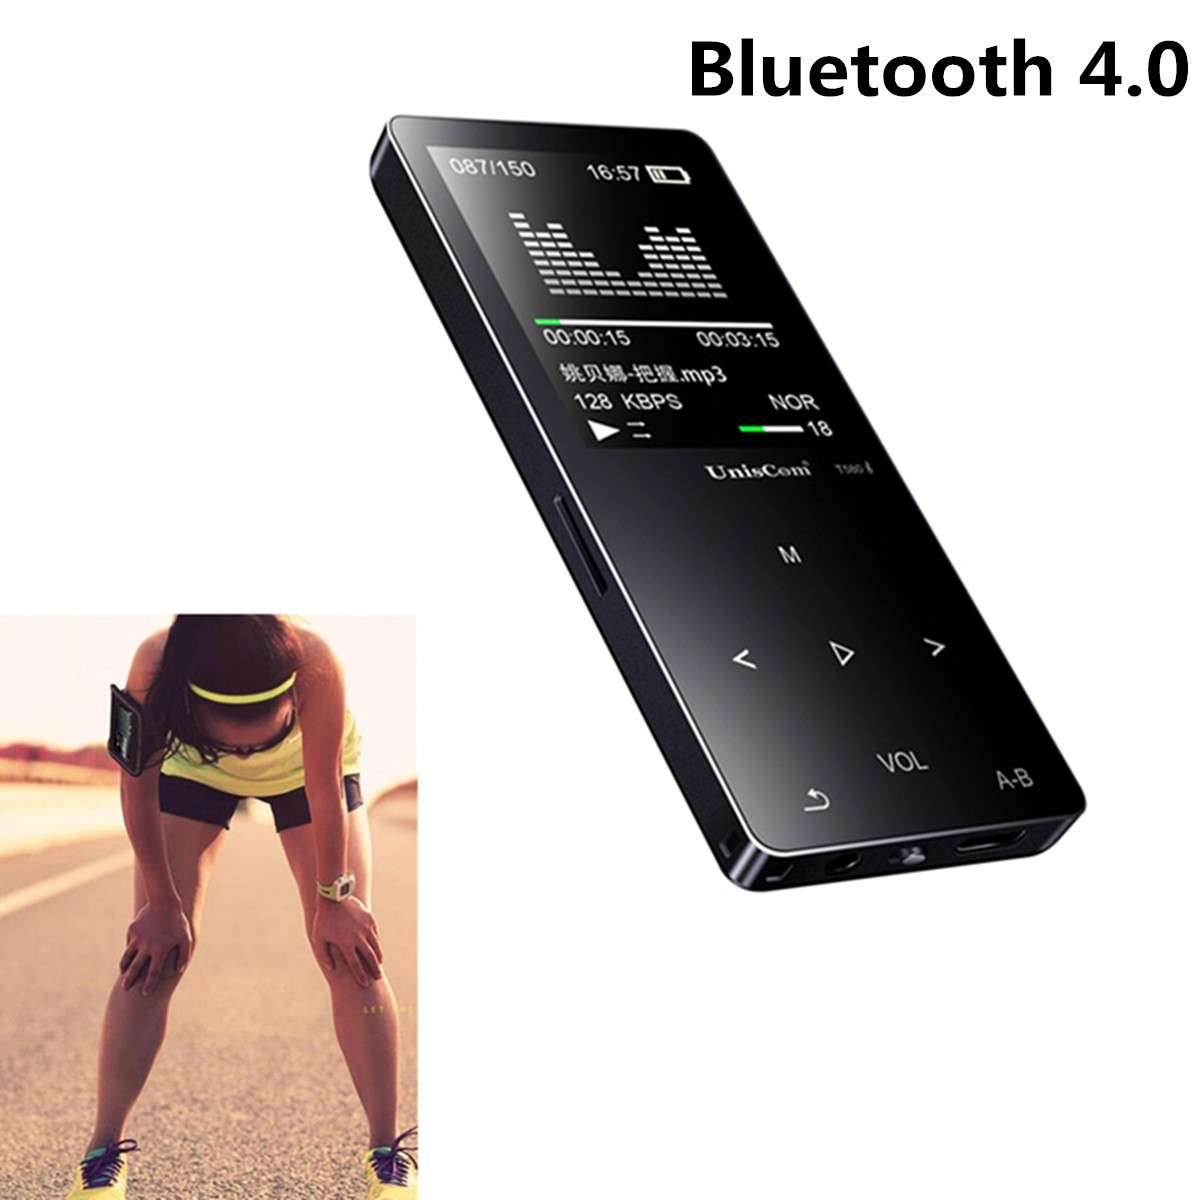 Uniscom 8G 1.8 Inch Screen bluetooth Lossless HIFI MP3 Music Player Support A-B Repeat Voice Record 8